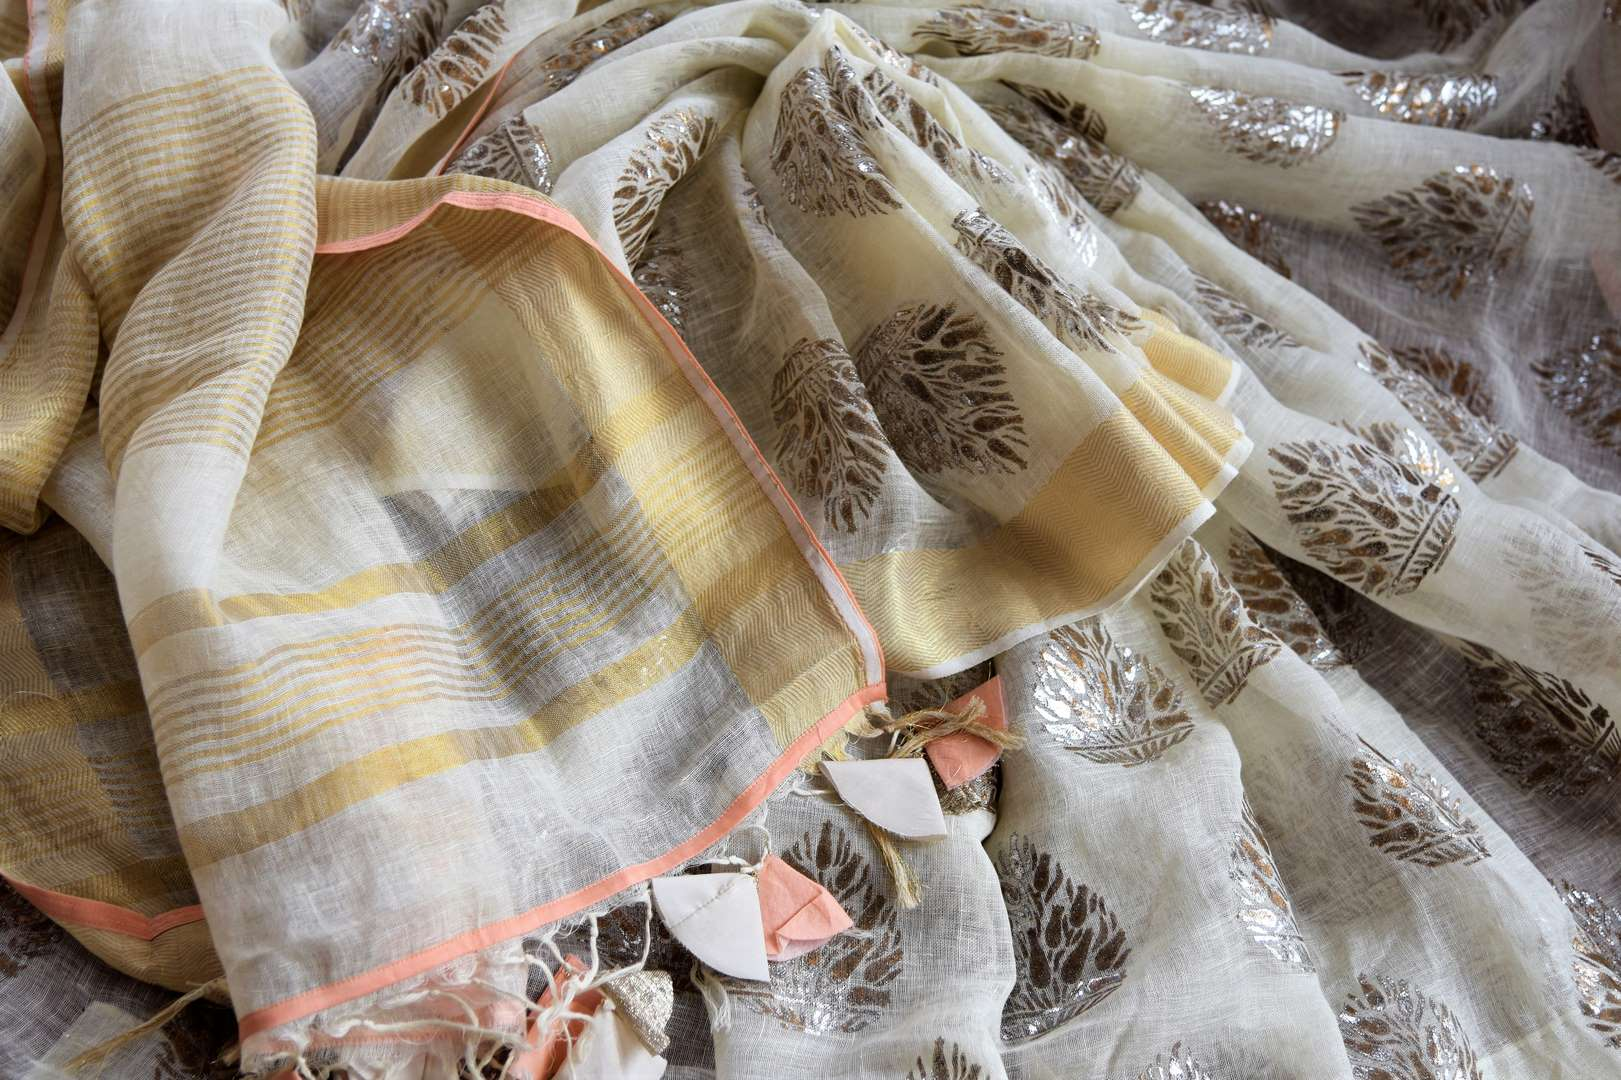 Buy cream linen sari online in USA with floral print and orange sari blouse. Select your favorite Indian sarees, pure silk sarees, wedding sarees from Pure Elegance Indian fashion store in USA for weddings and special occasions.-details